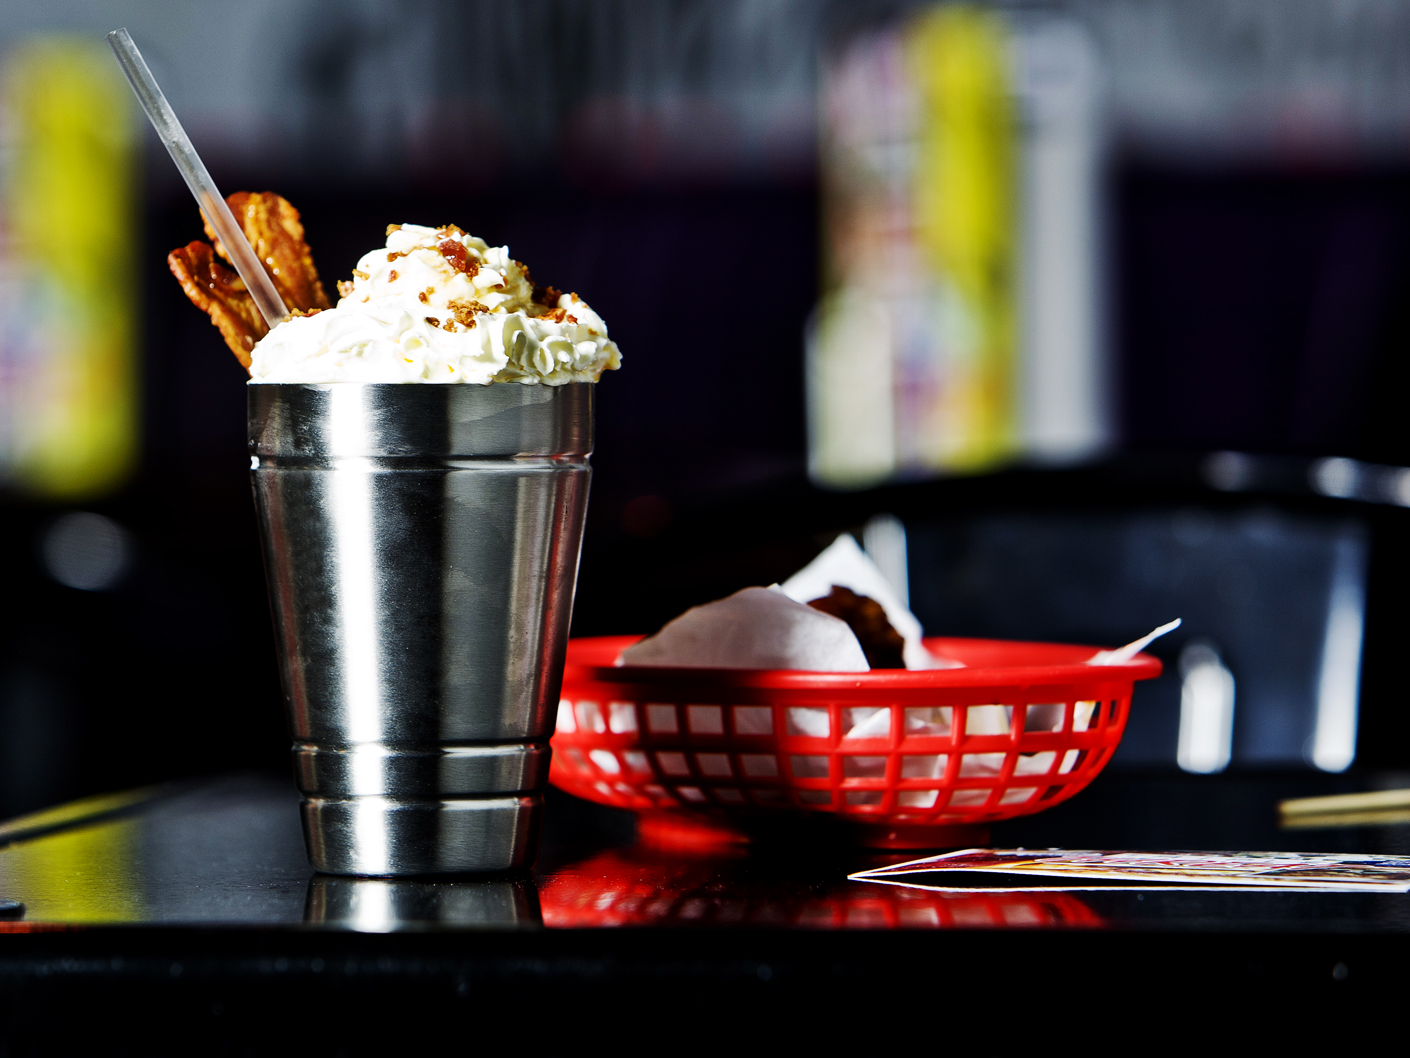 product-and-food-photographer-in-manchester-and-london